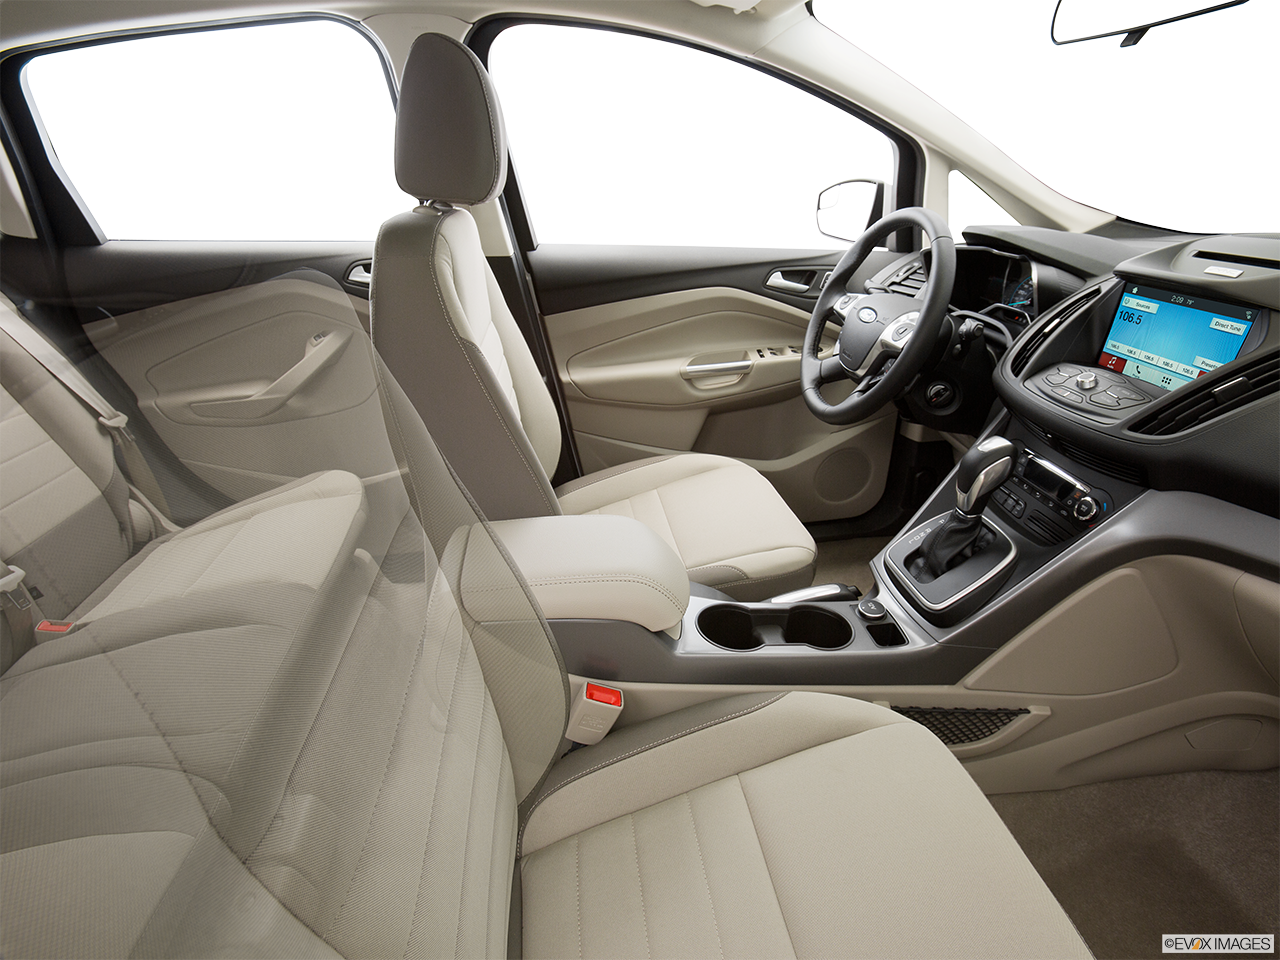 Interior View Of 2016 Ford C-Max in Los Angeles